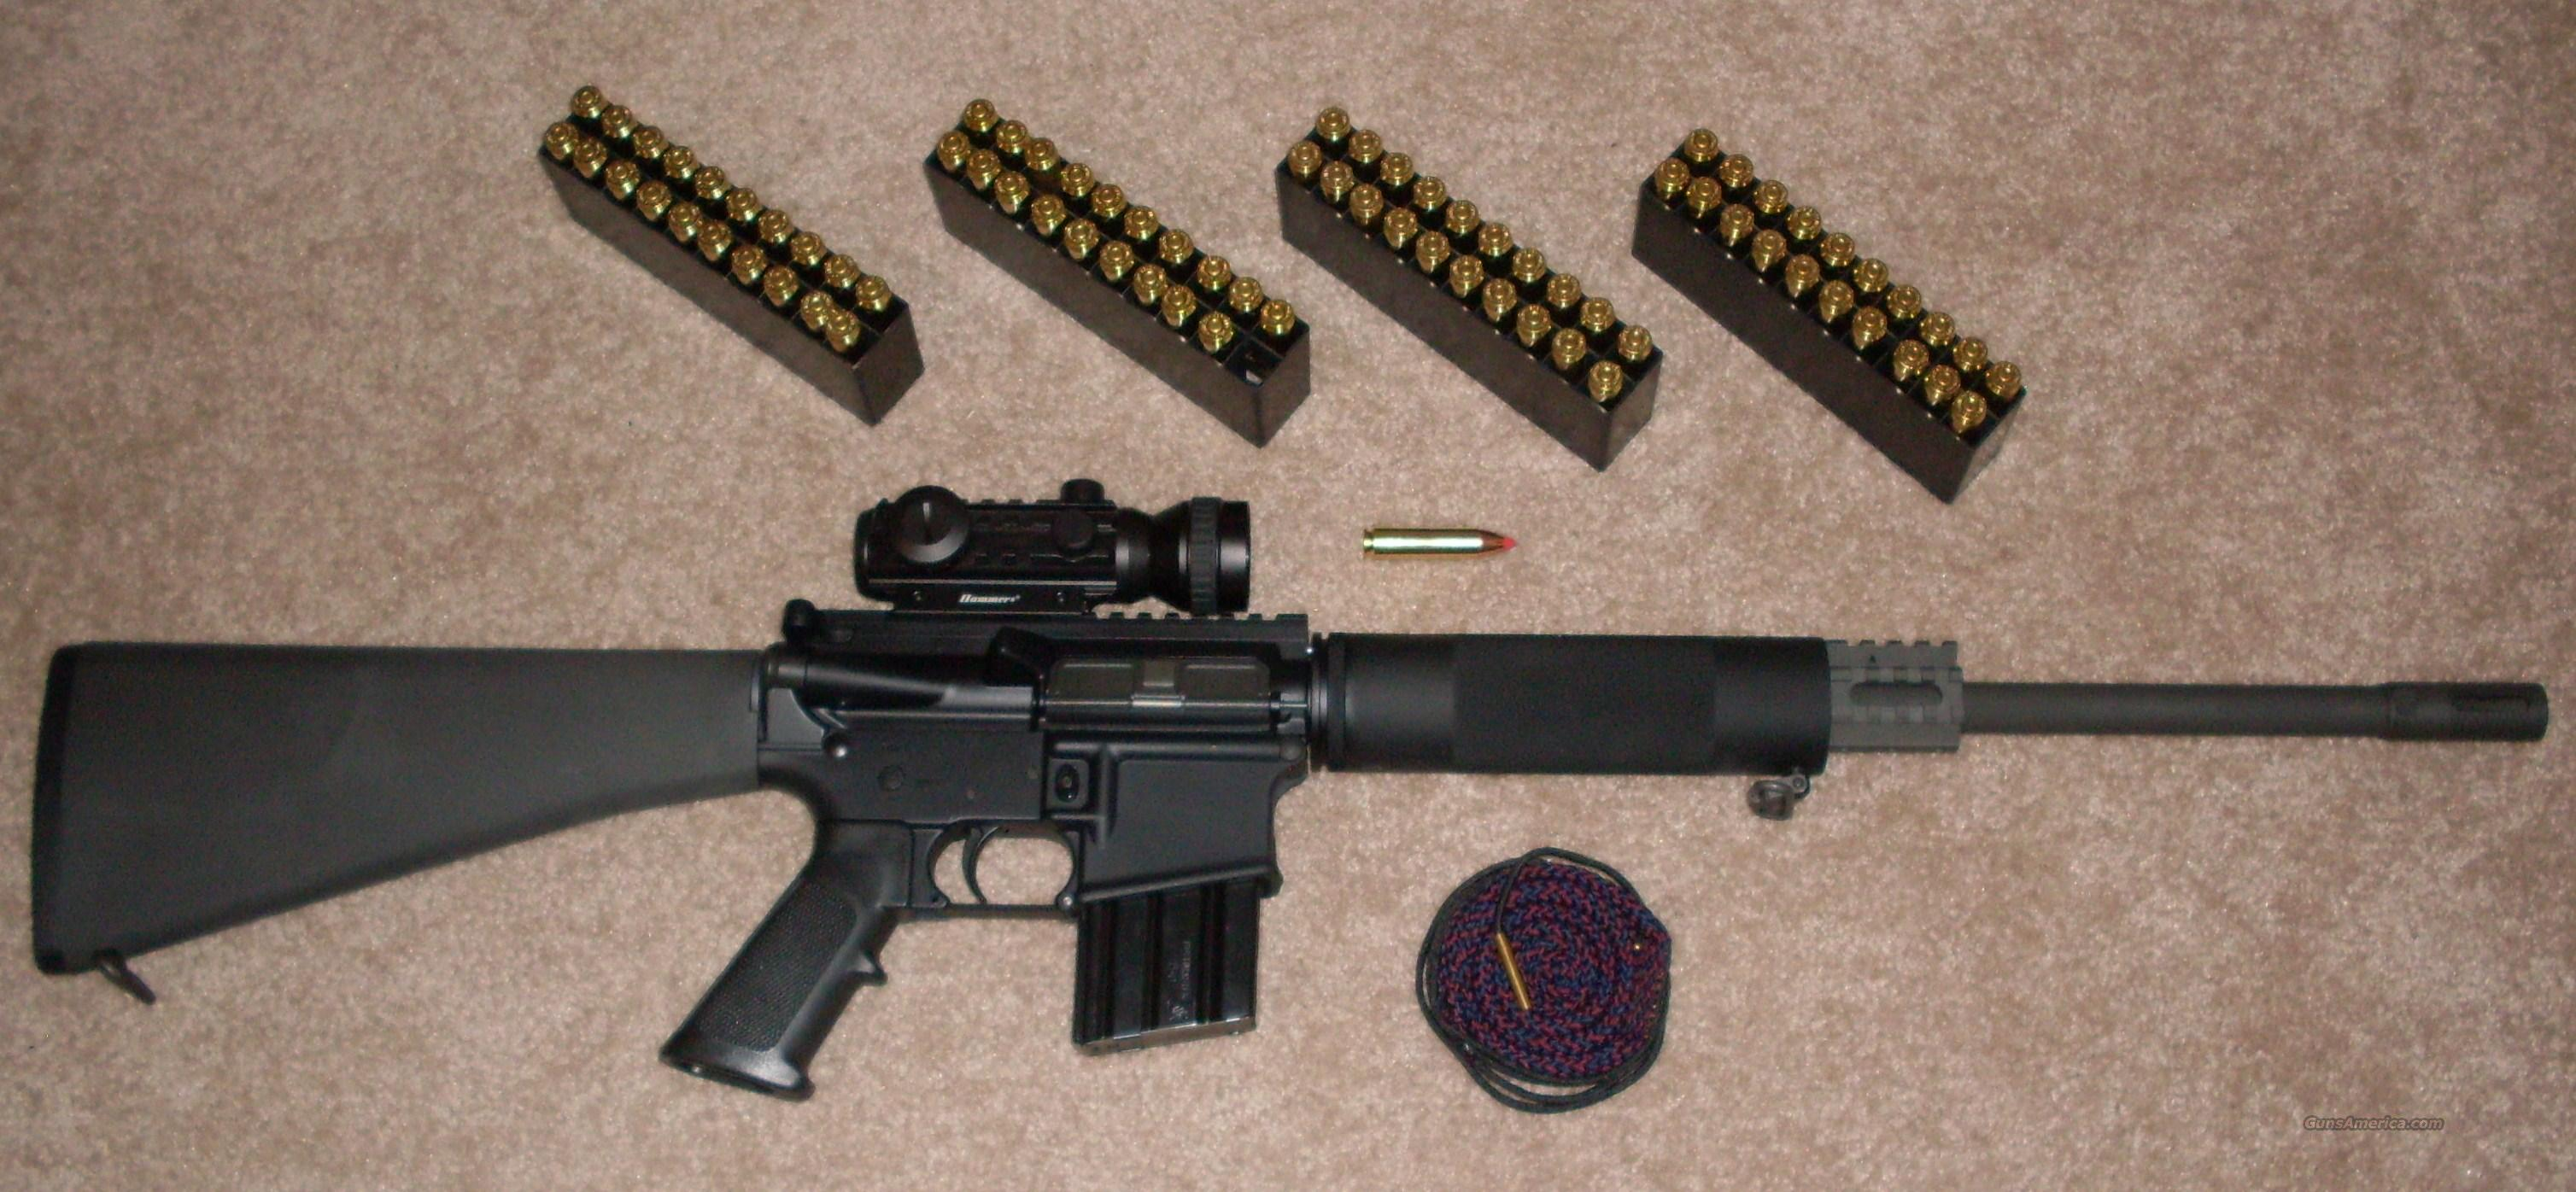 .450 BUSHMASTER WITH EXTRAS!  Guns > Rifles > Bushmaster Rifles > Complete Rifles